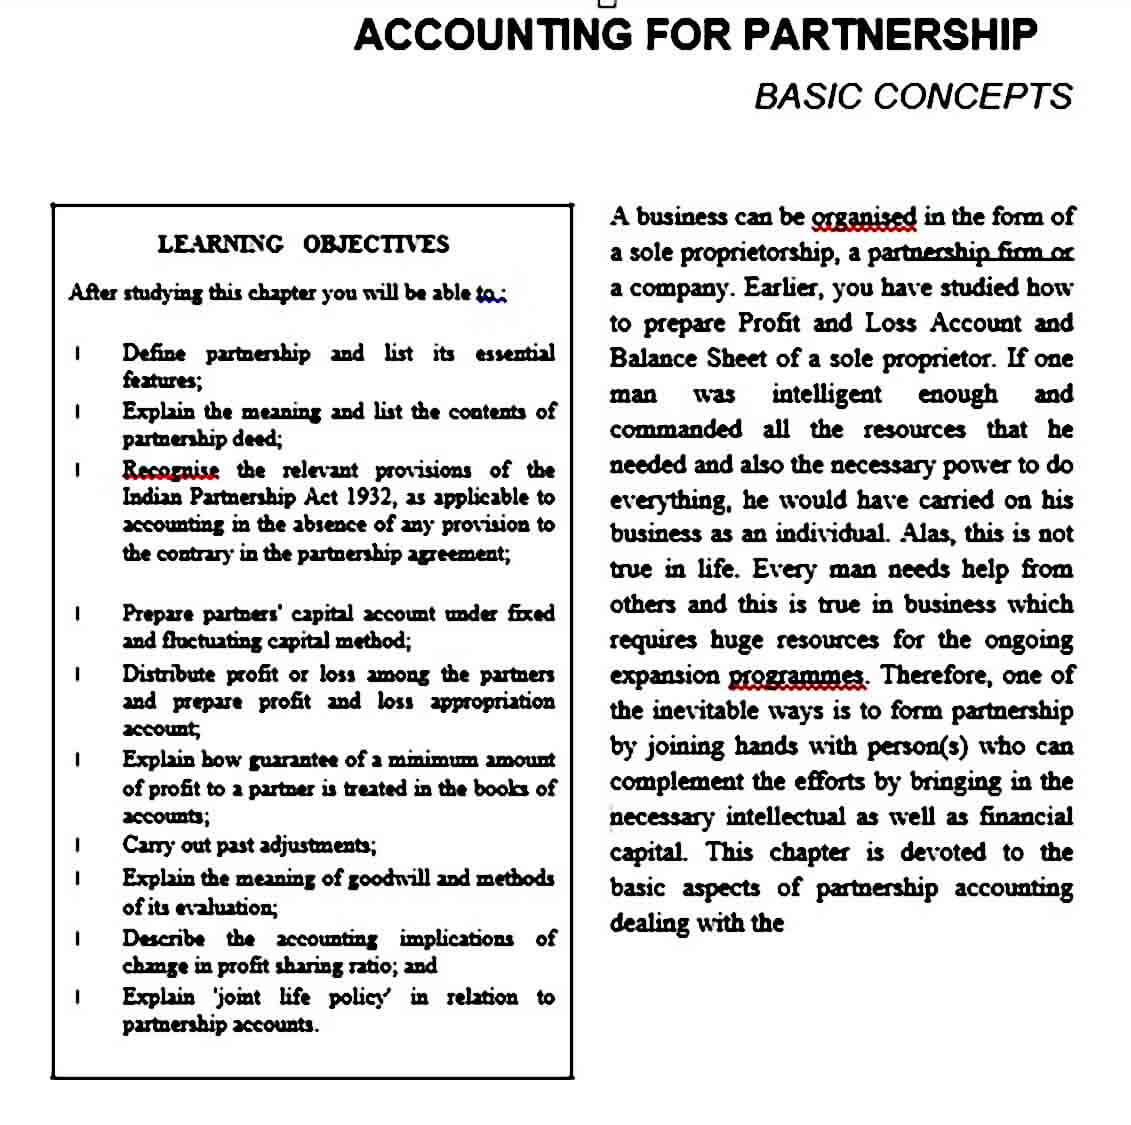 Profit and Loss Appropriation Account templates